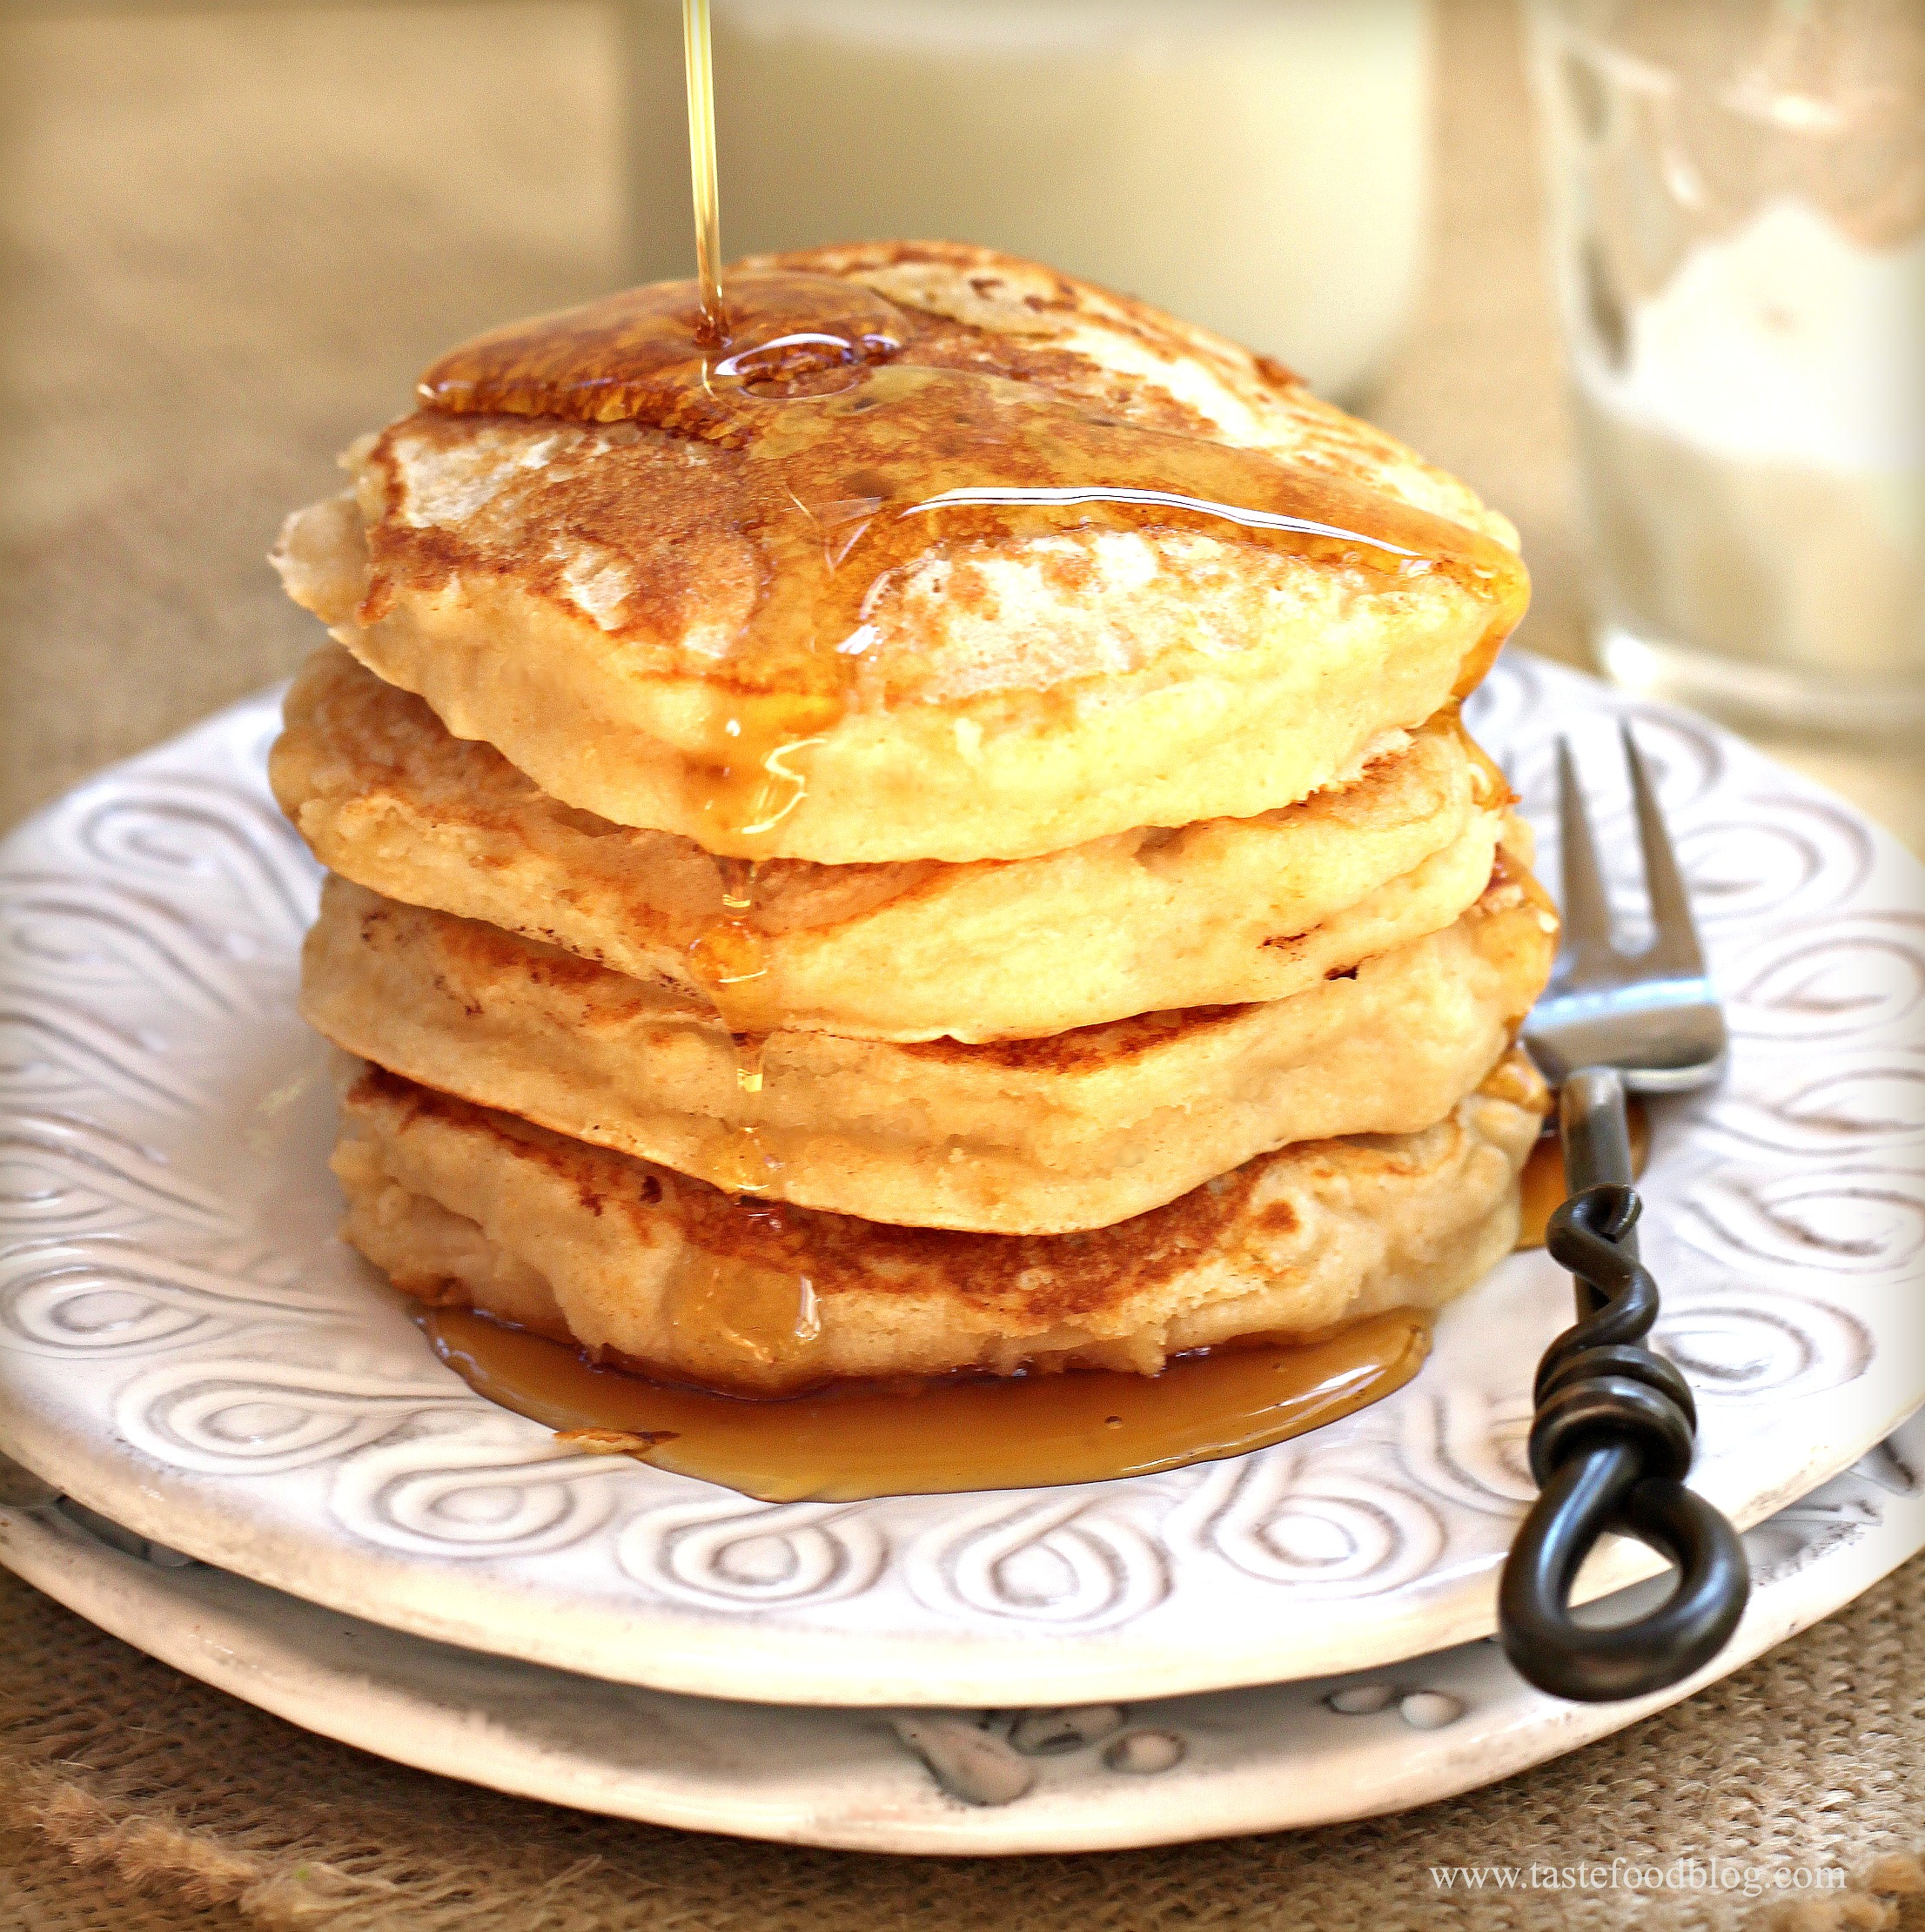 Image Result For American Pancakes